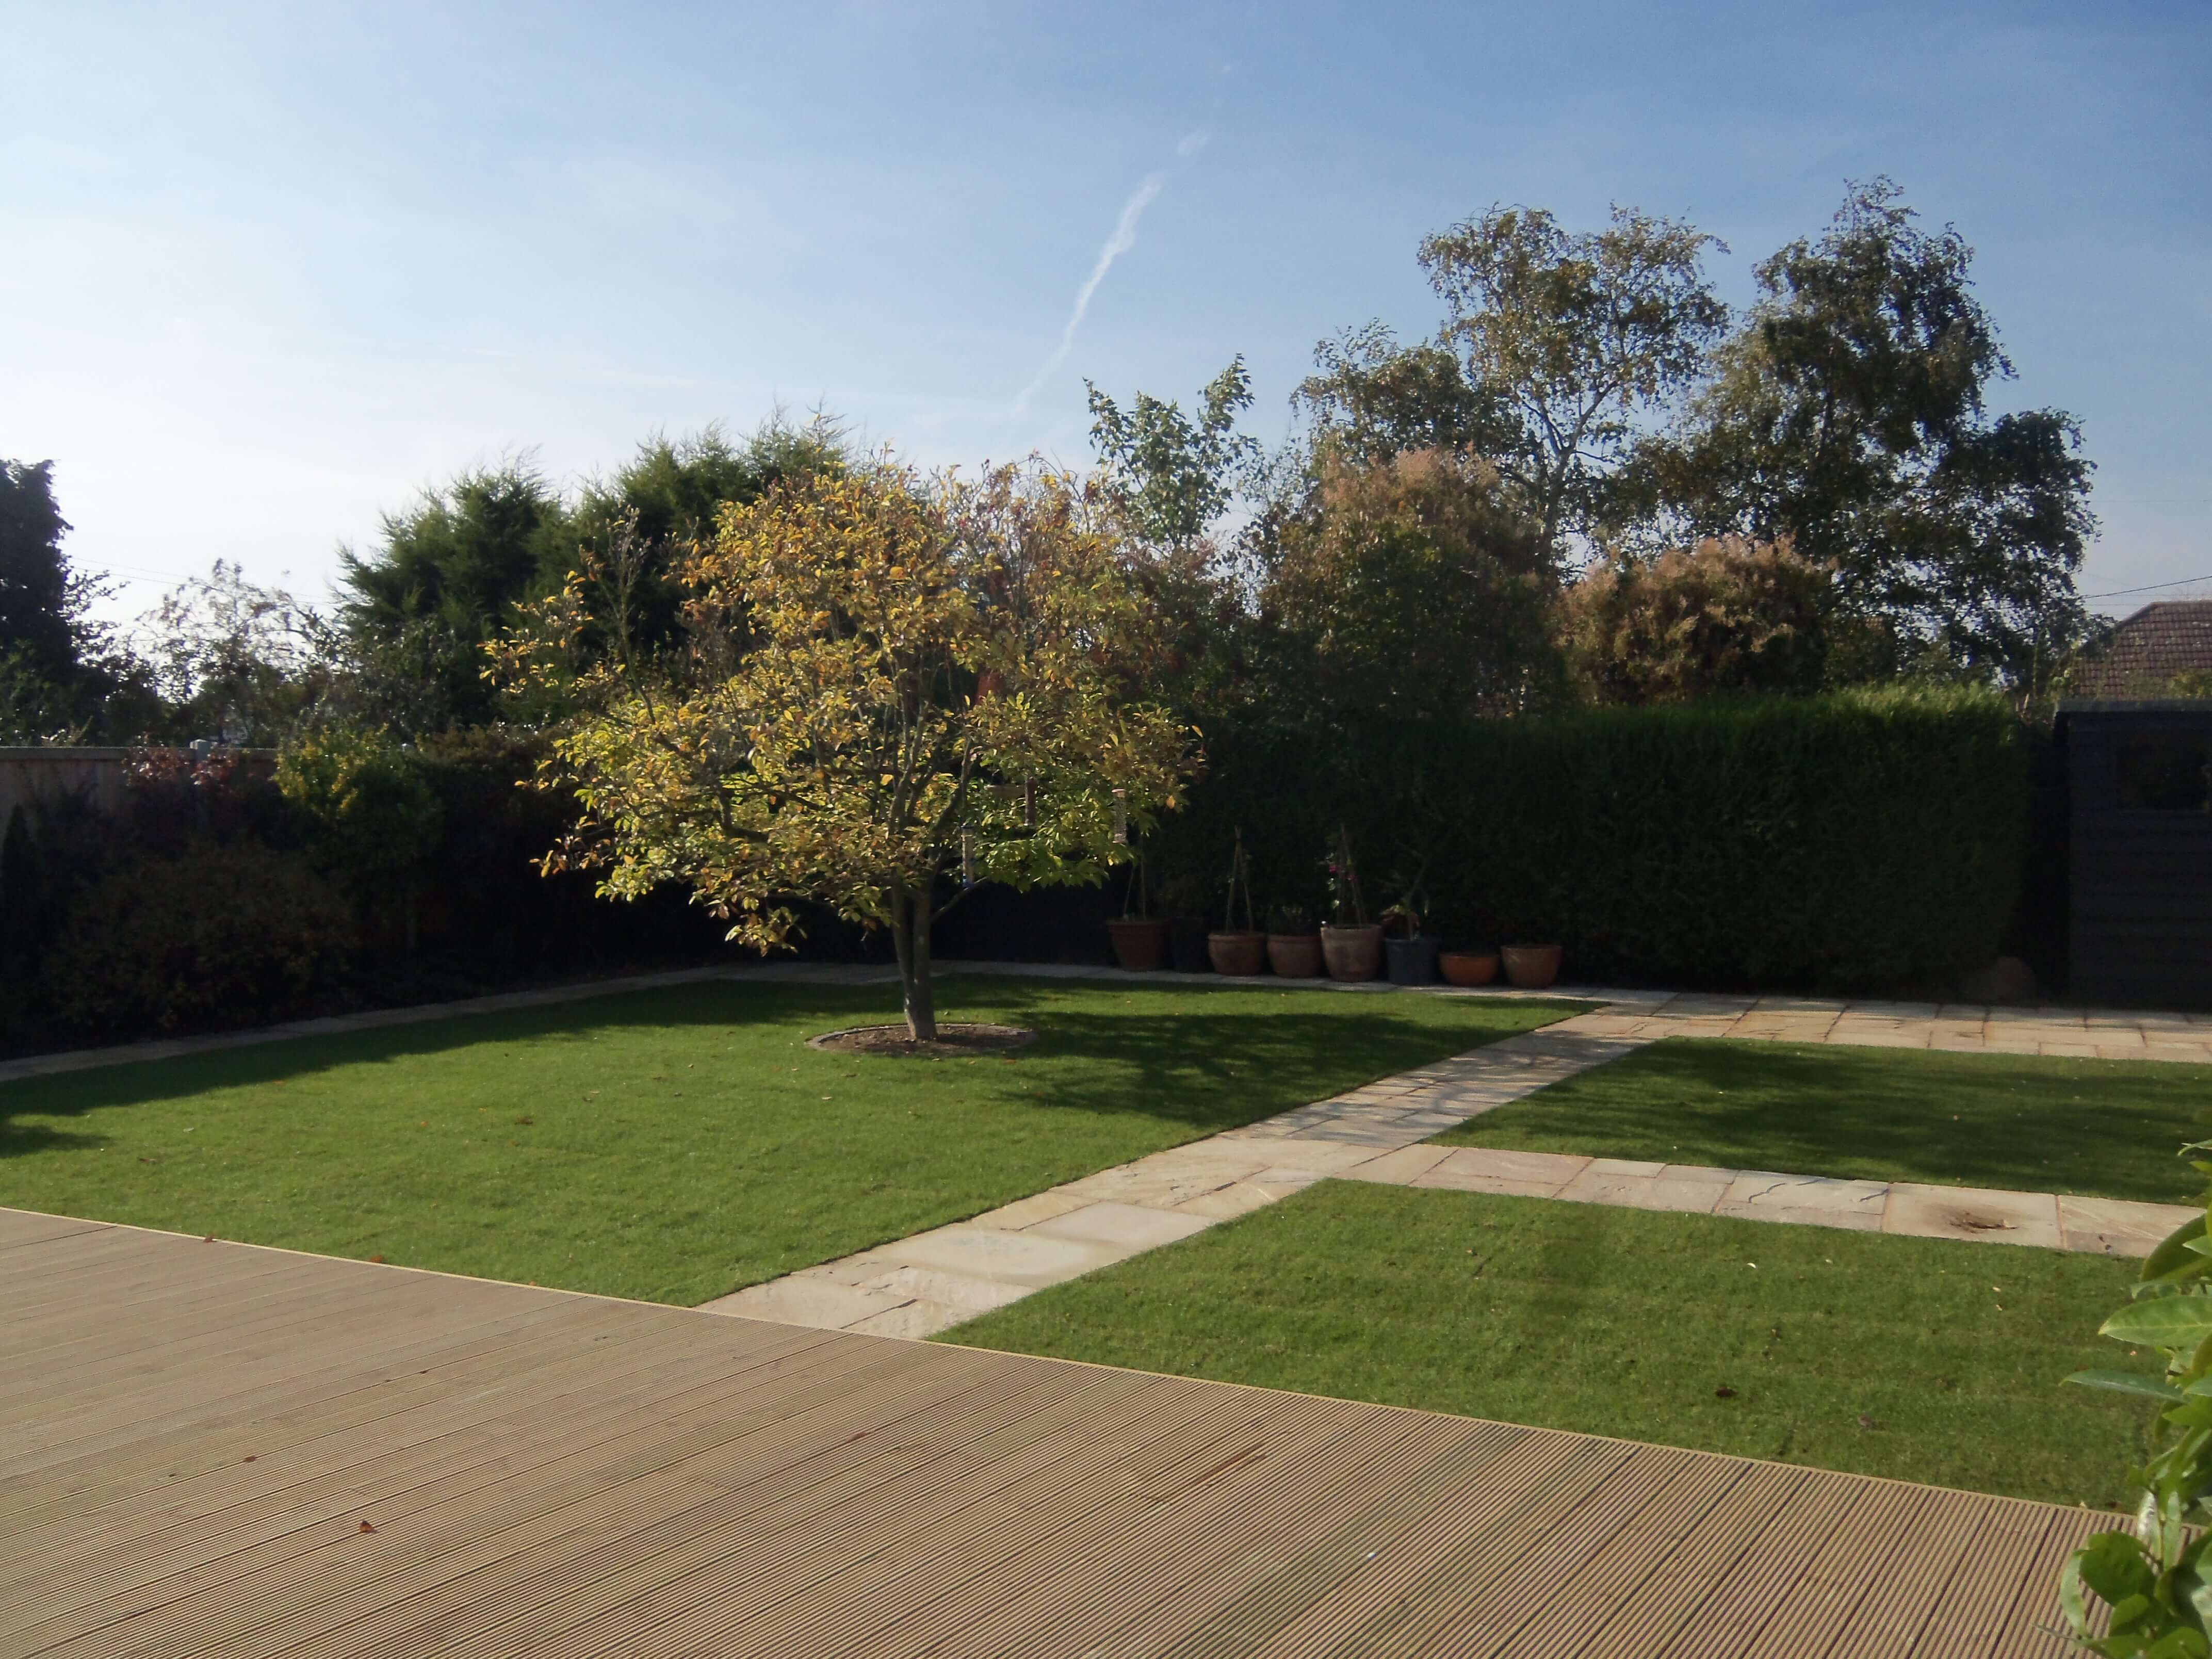 Landscaping-2-2